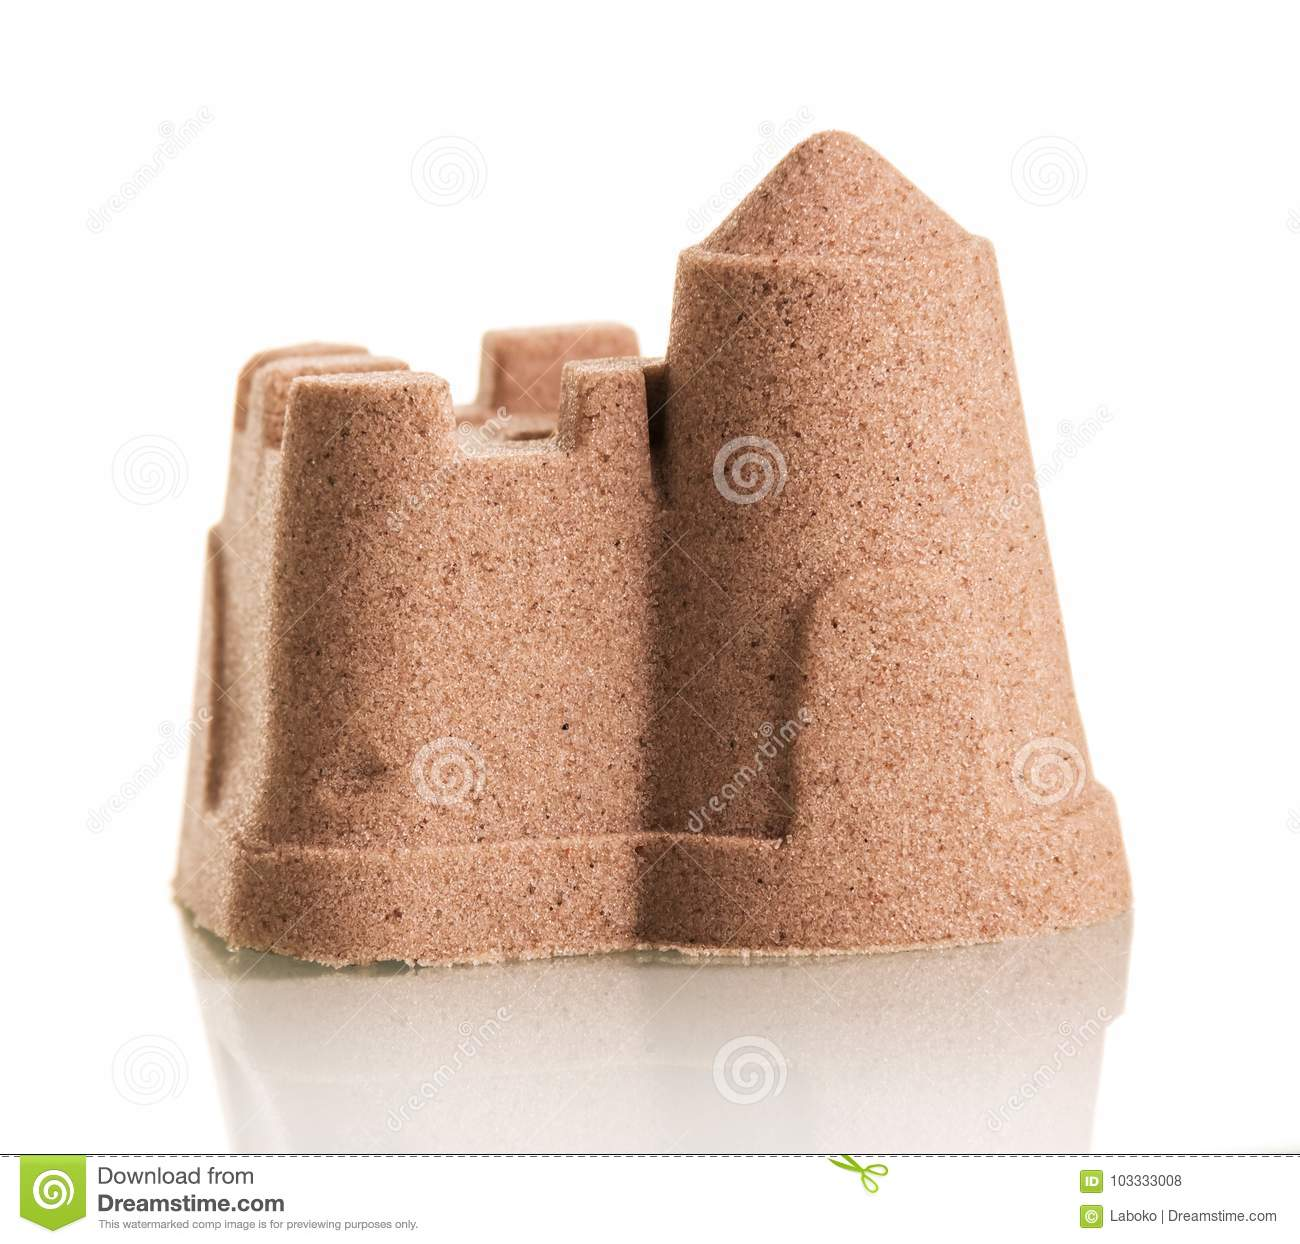 Sand castle isolated on white background.